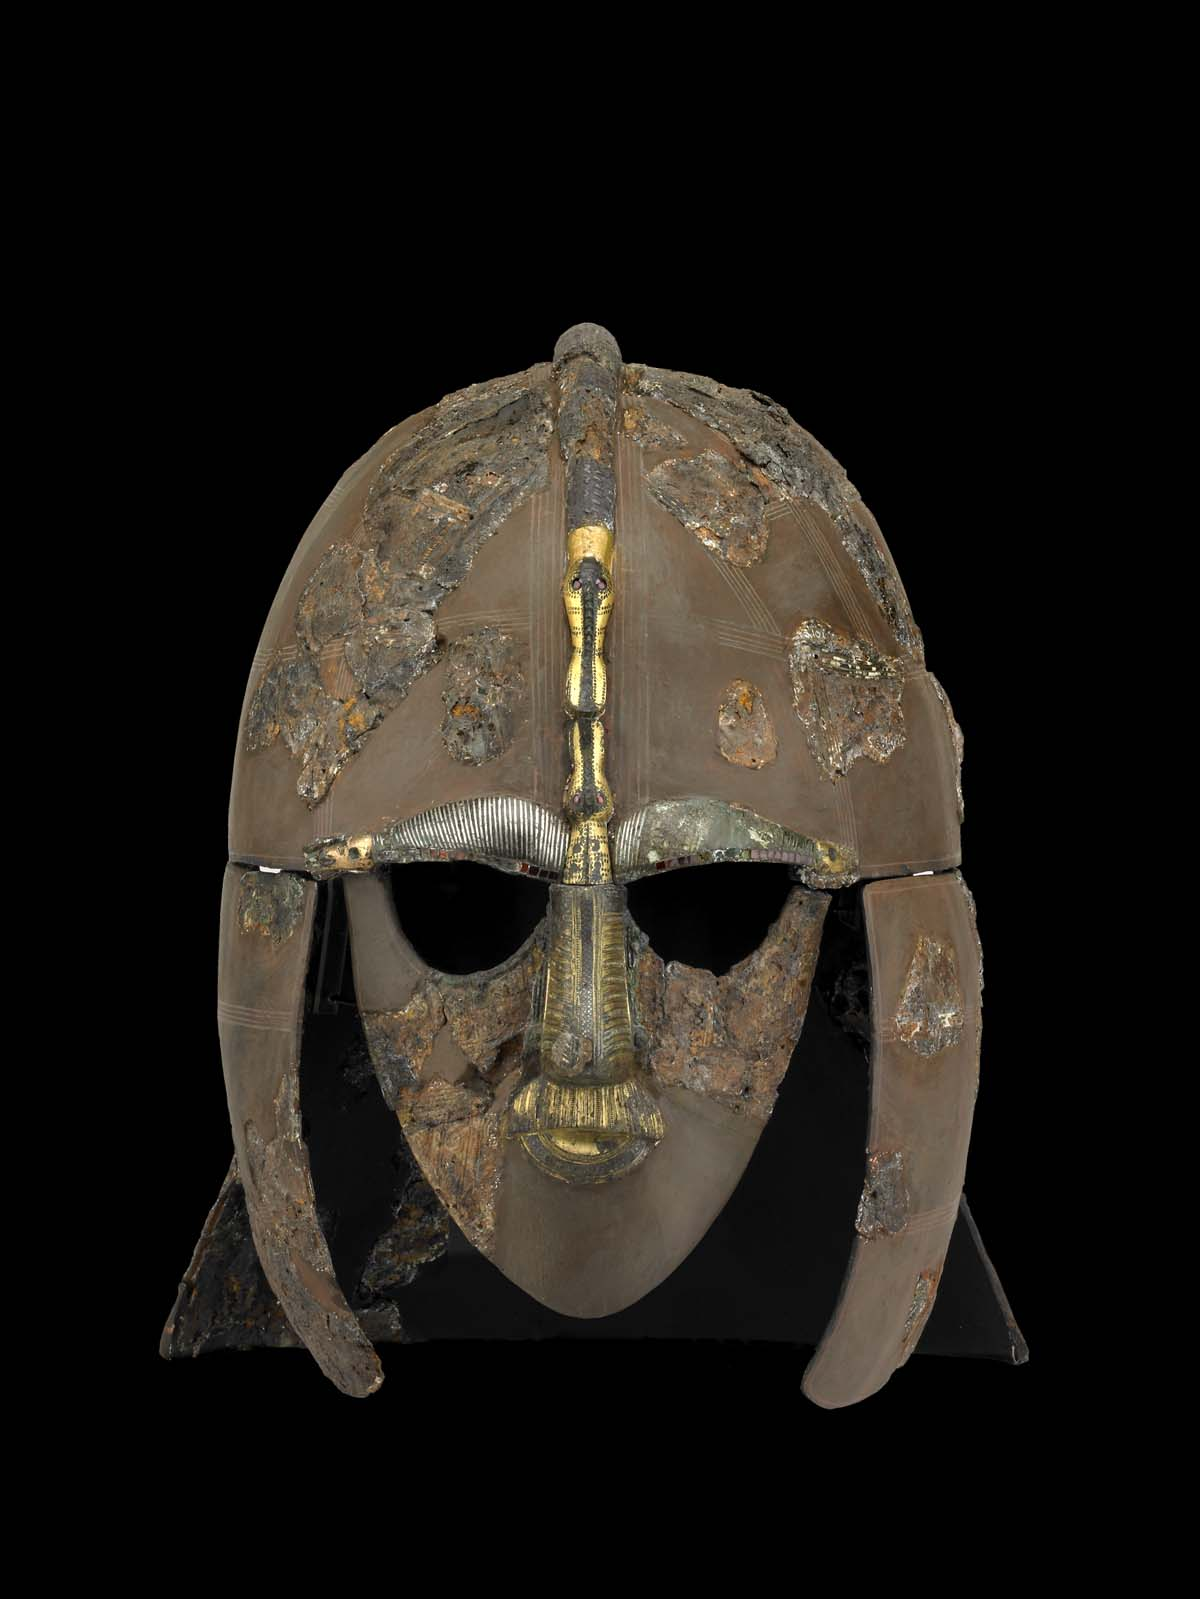 photo of a the sutton hoo helmet a full face helmet with face shield domed top helmet and ear protectors